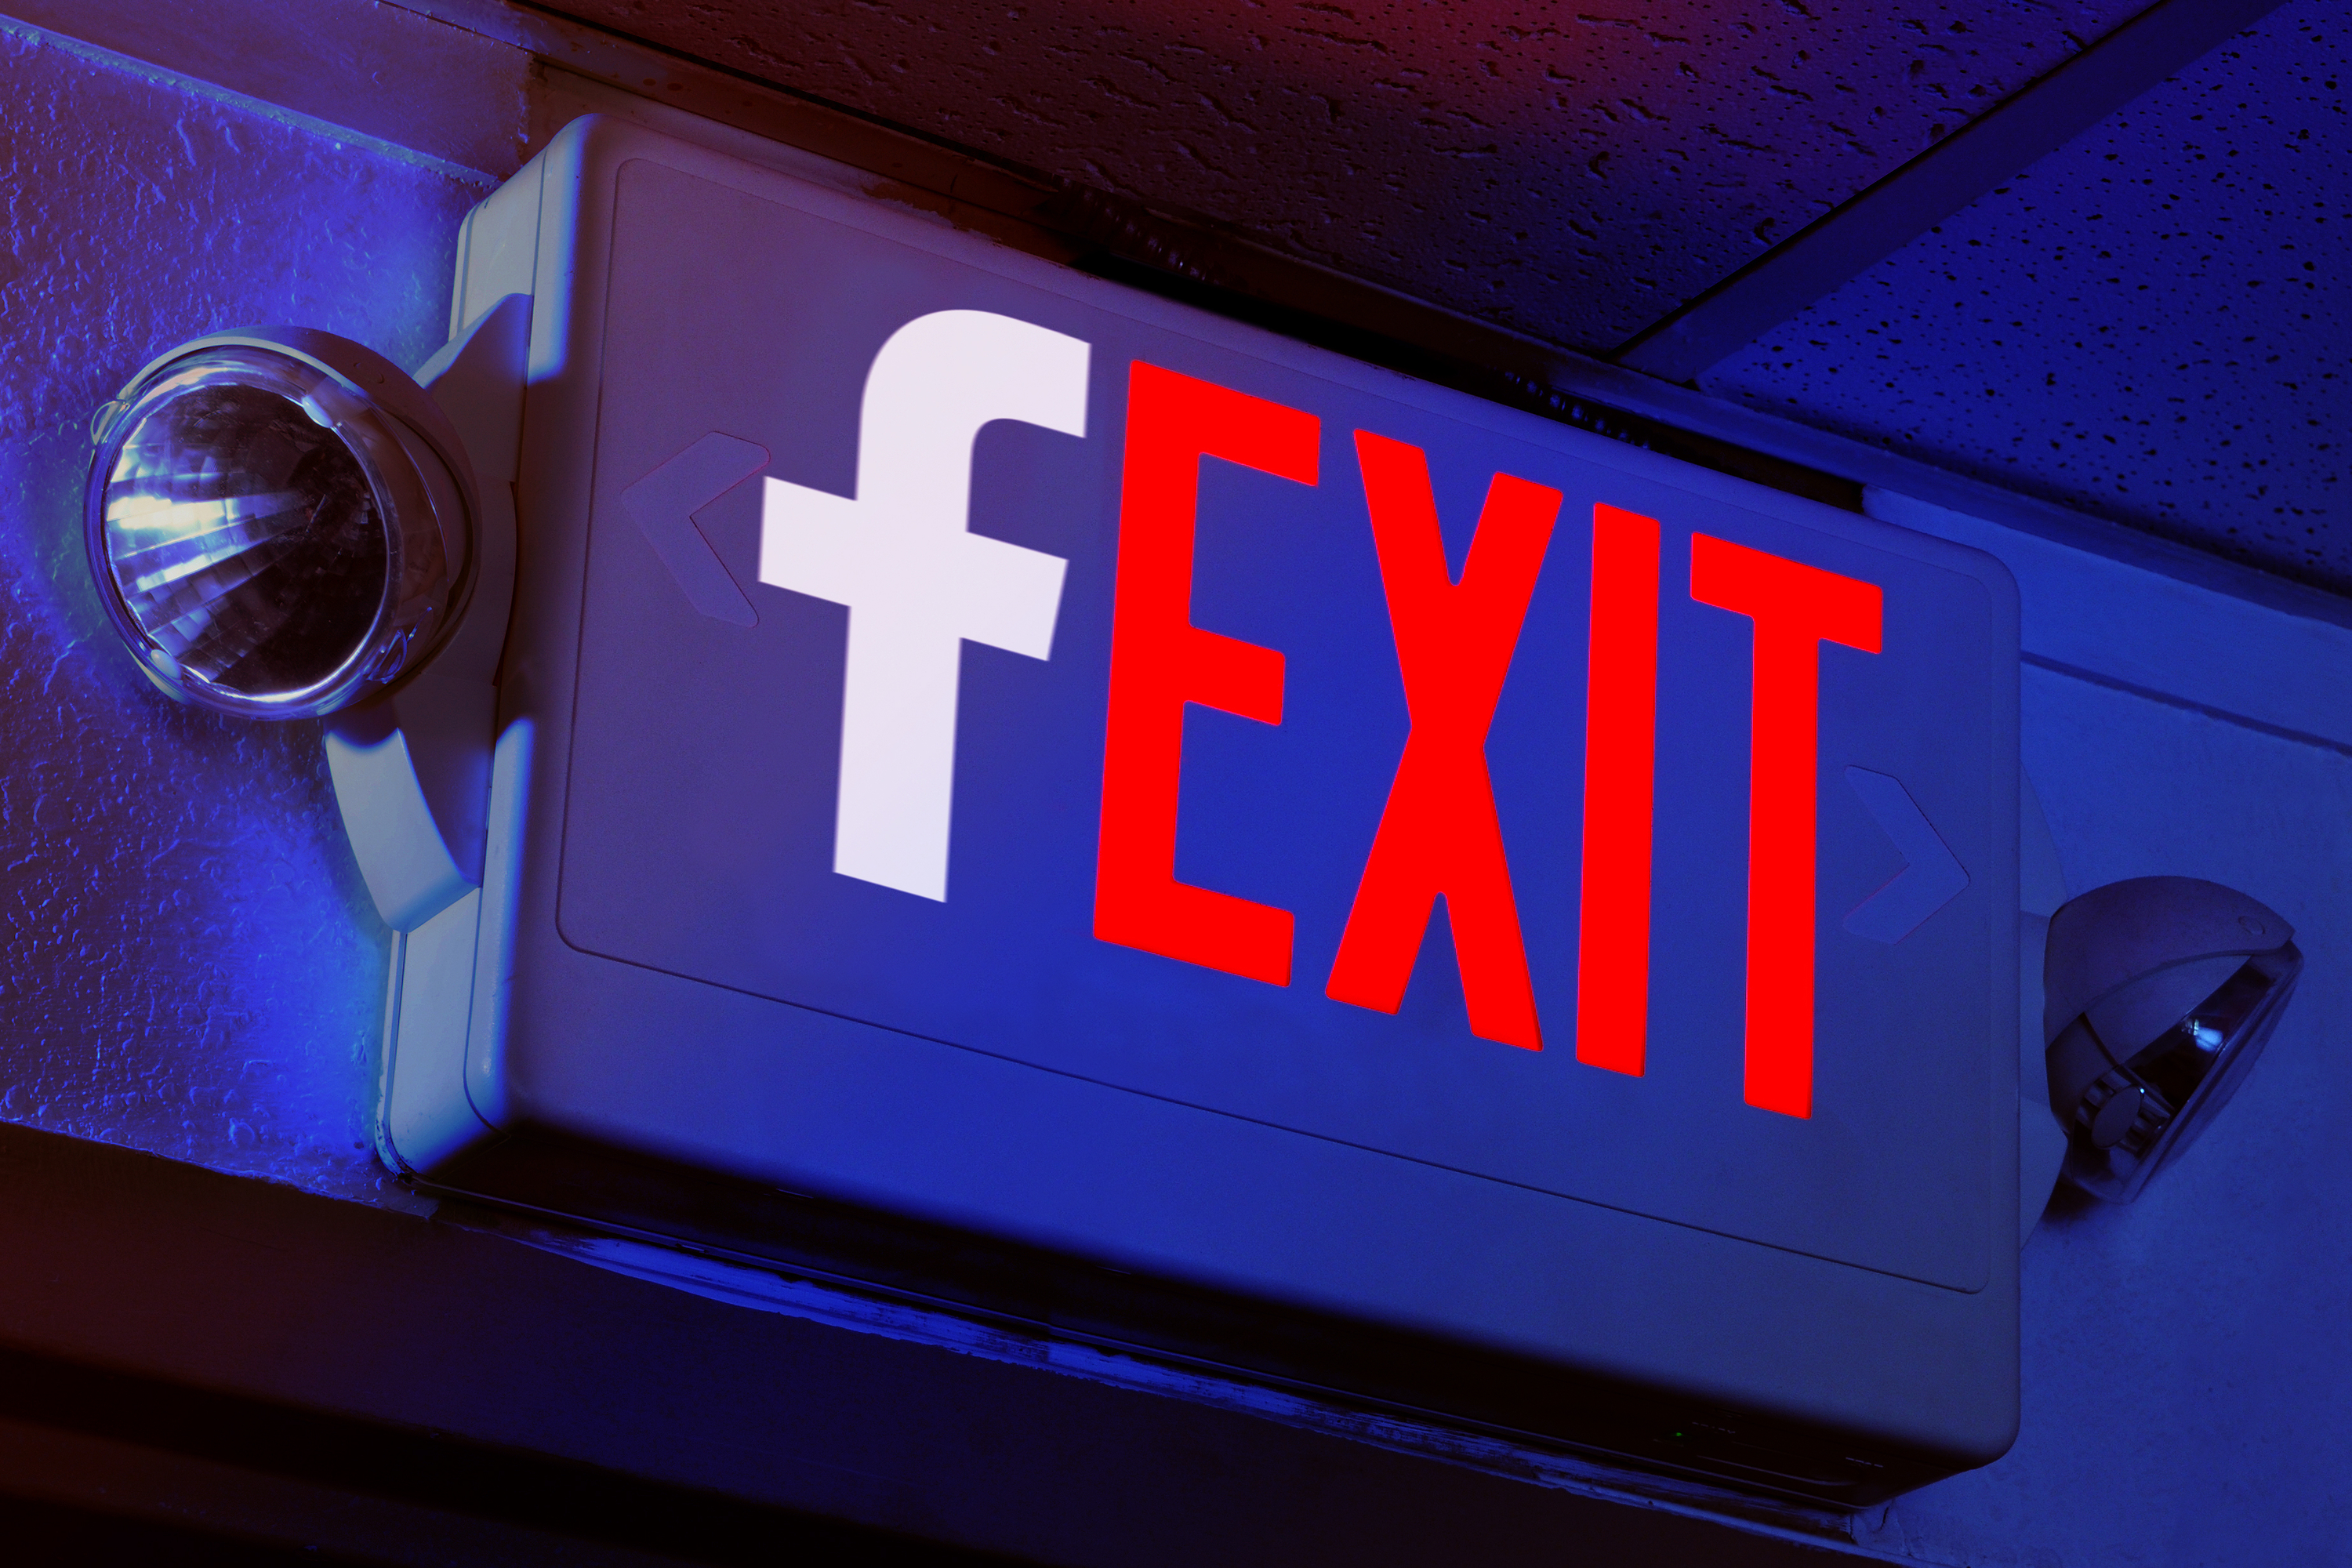 How Facebook is dealing with the boycott that started with a secretive Twitter account shaming brands